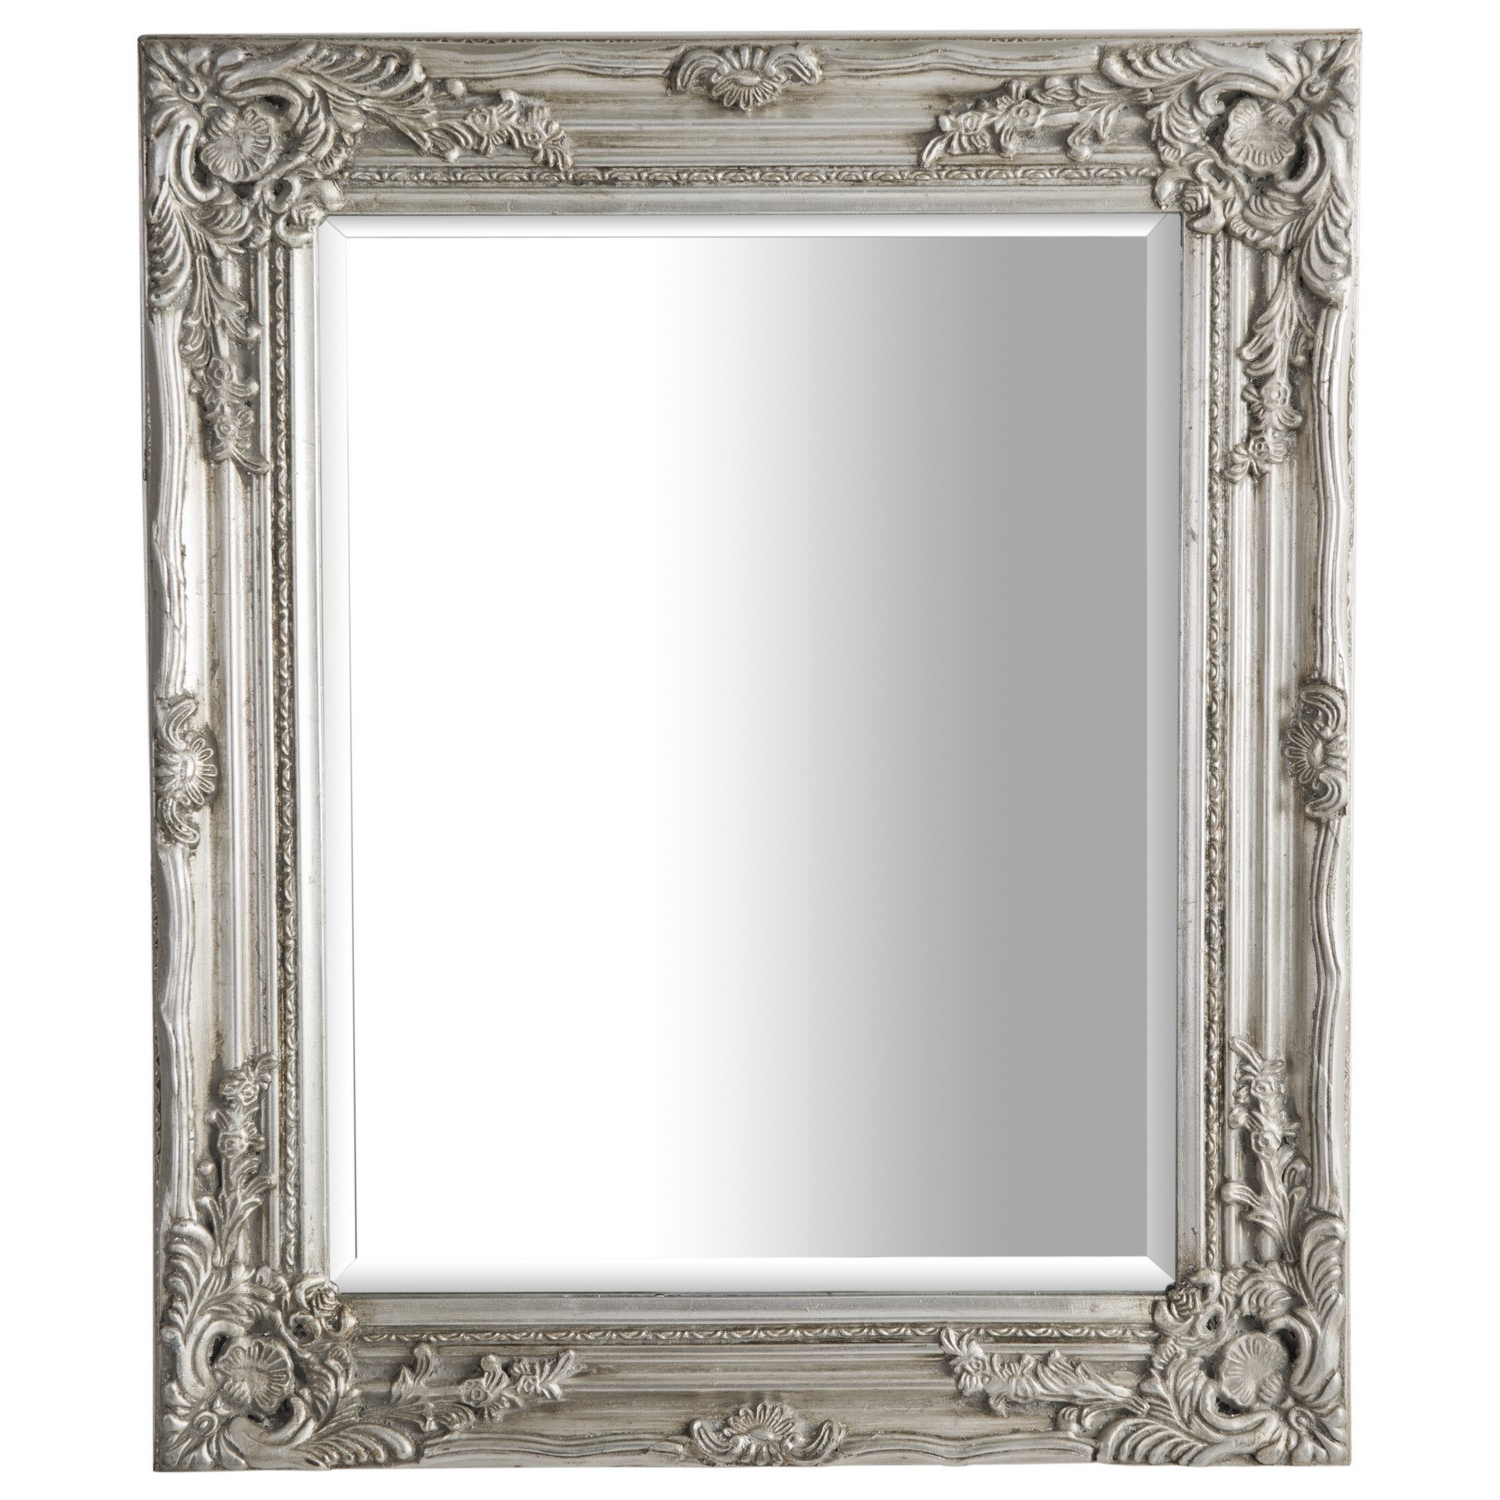 Ornate Wall Mirrors In Fashionable Silver Antique Ornate Mirror (View 5 of 20)